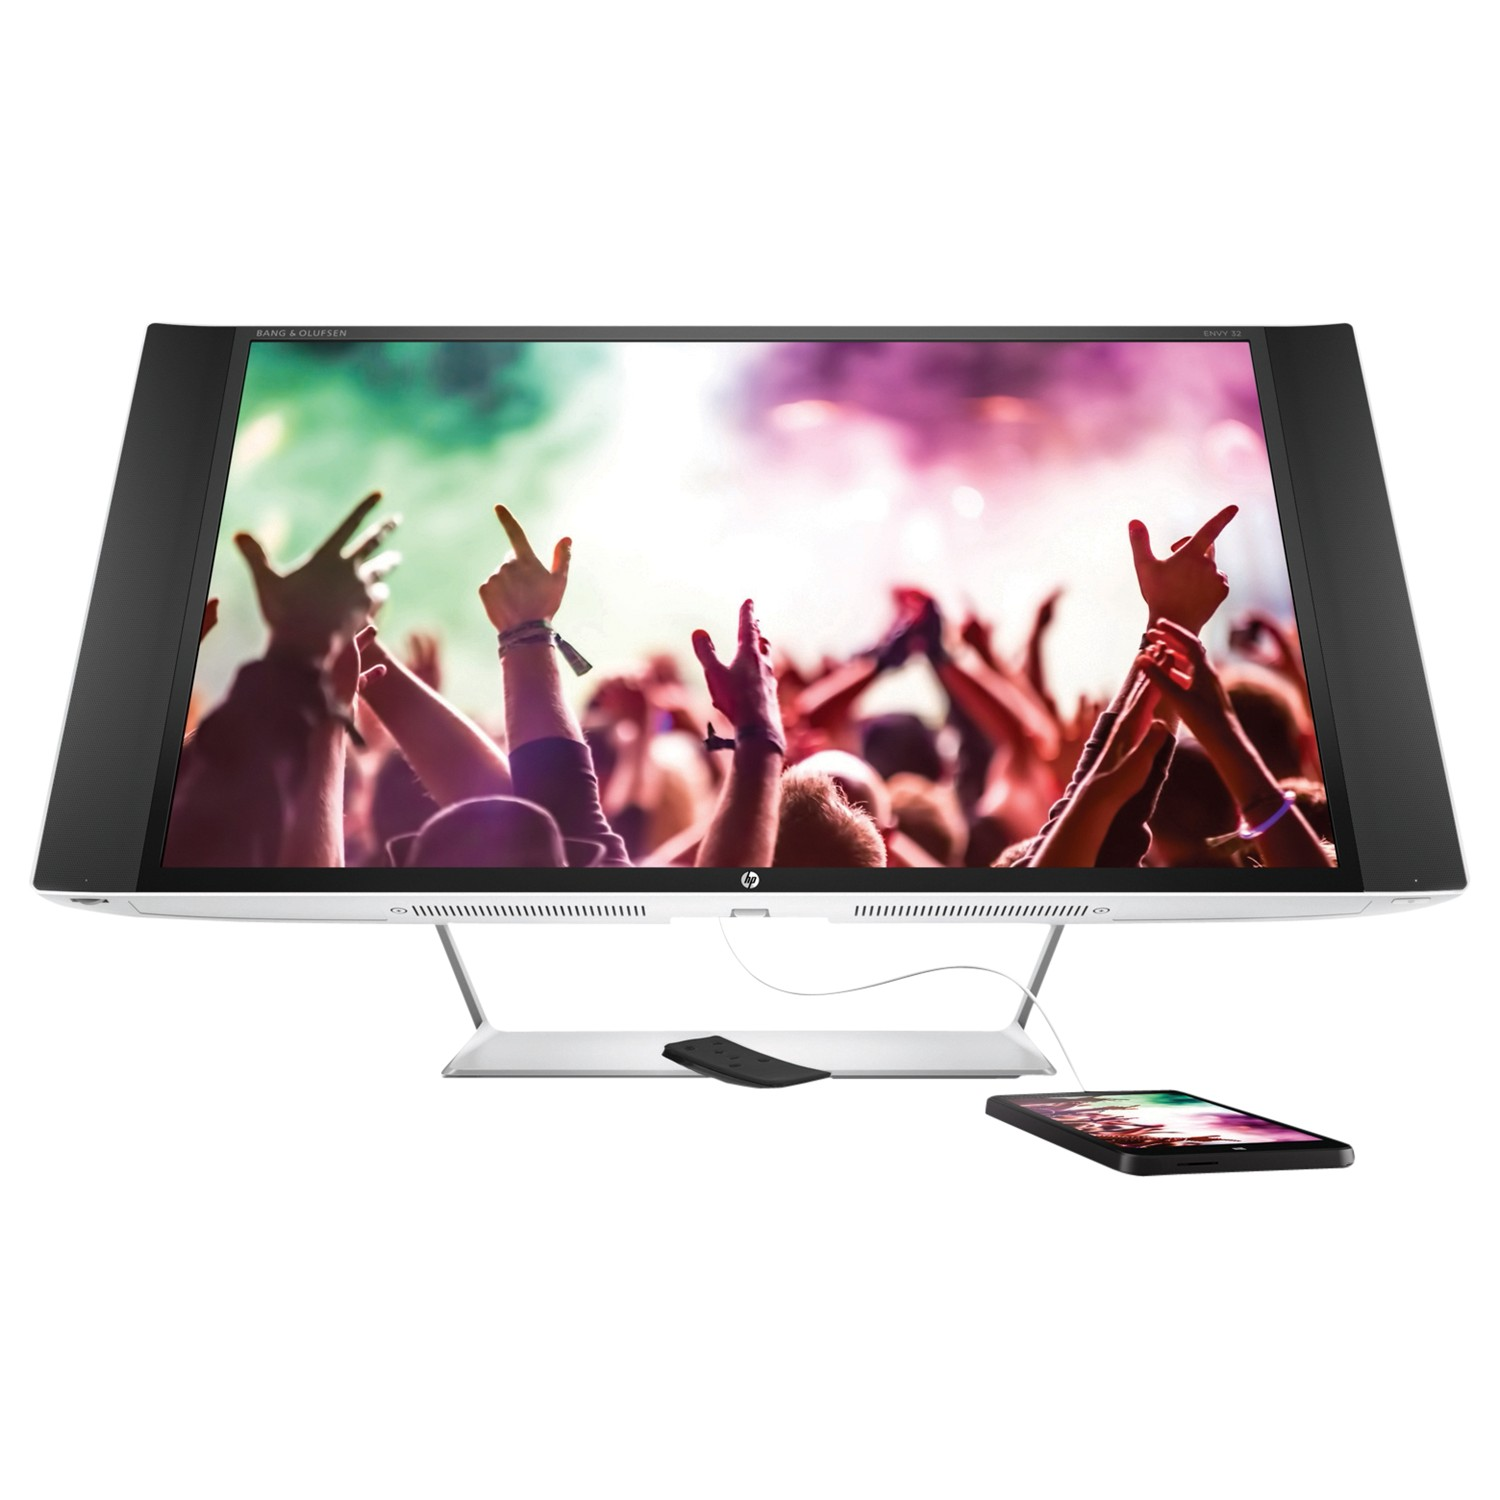 HP ENVY 32 TechniColour Certified IPS Quad HD Gaming Monitor